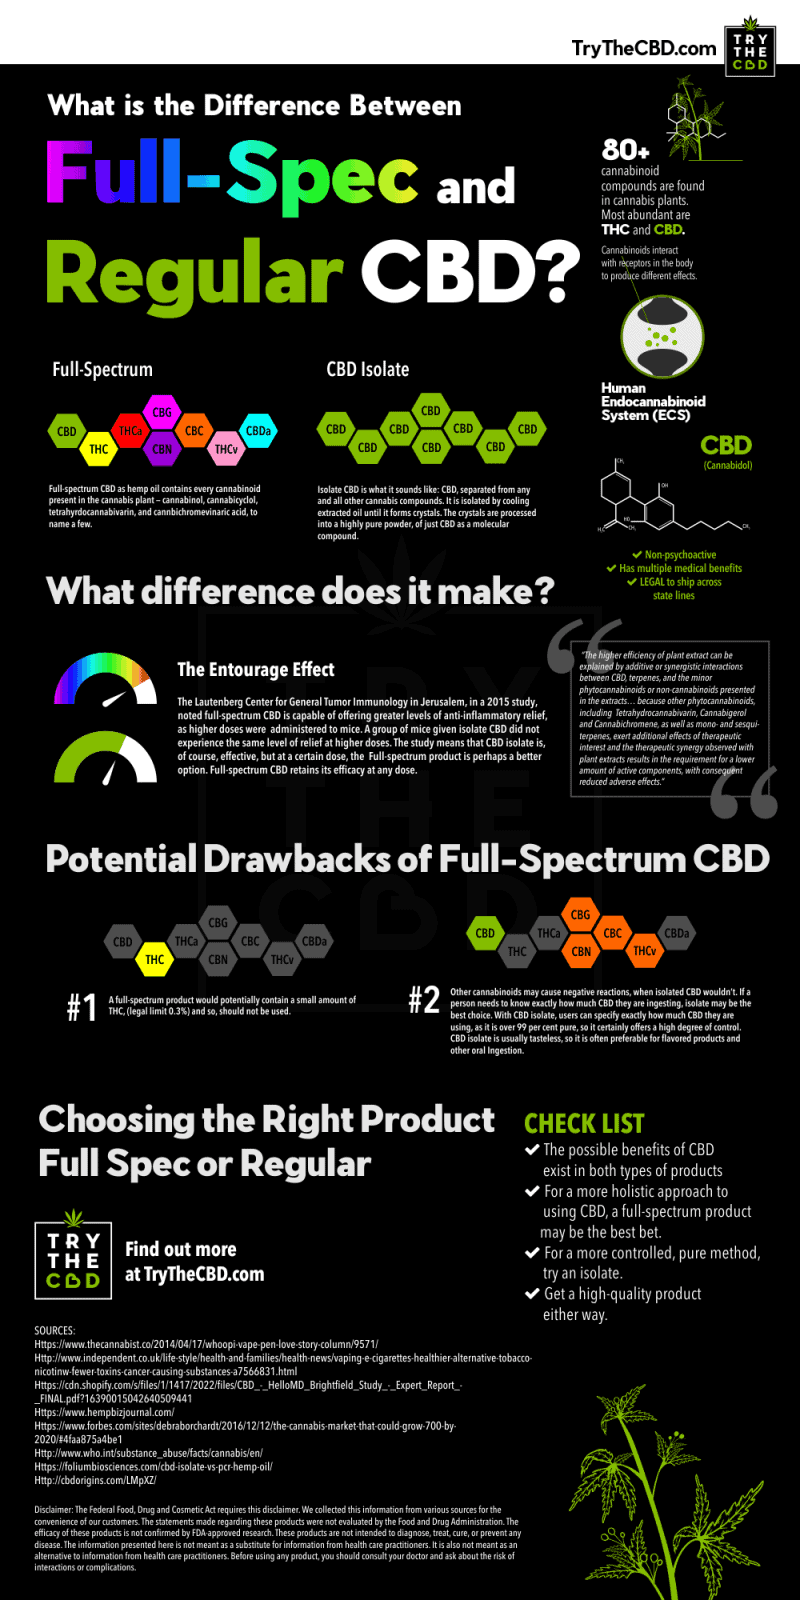 CBD Full Spectrum (What is the difference between Full and